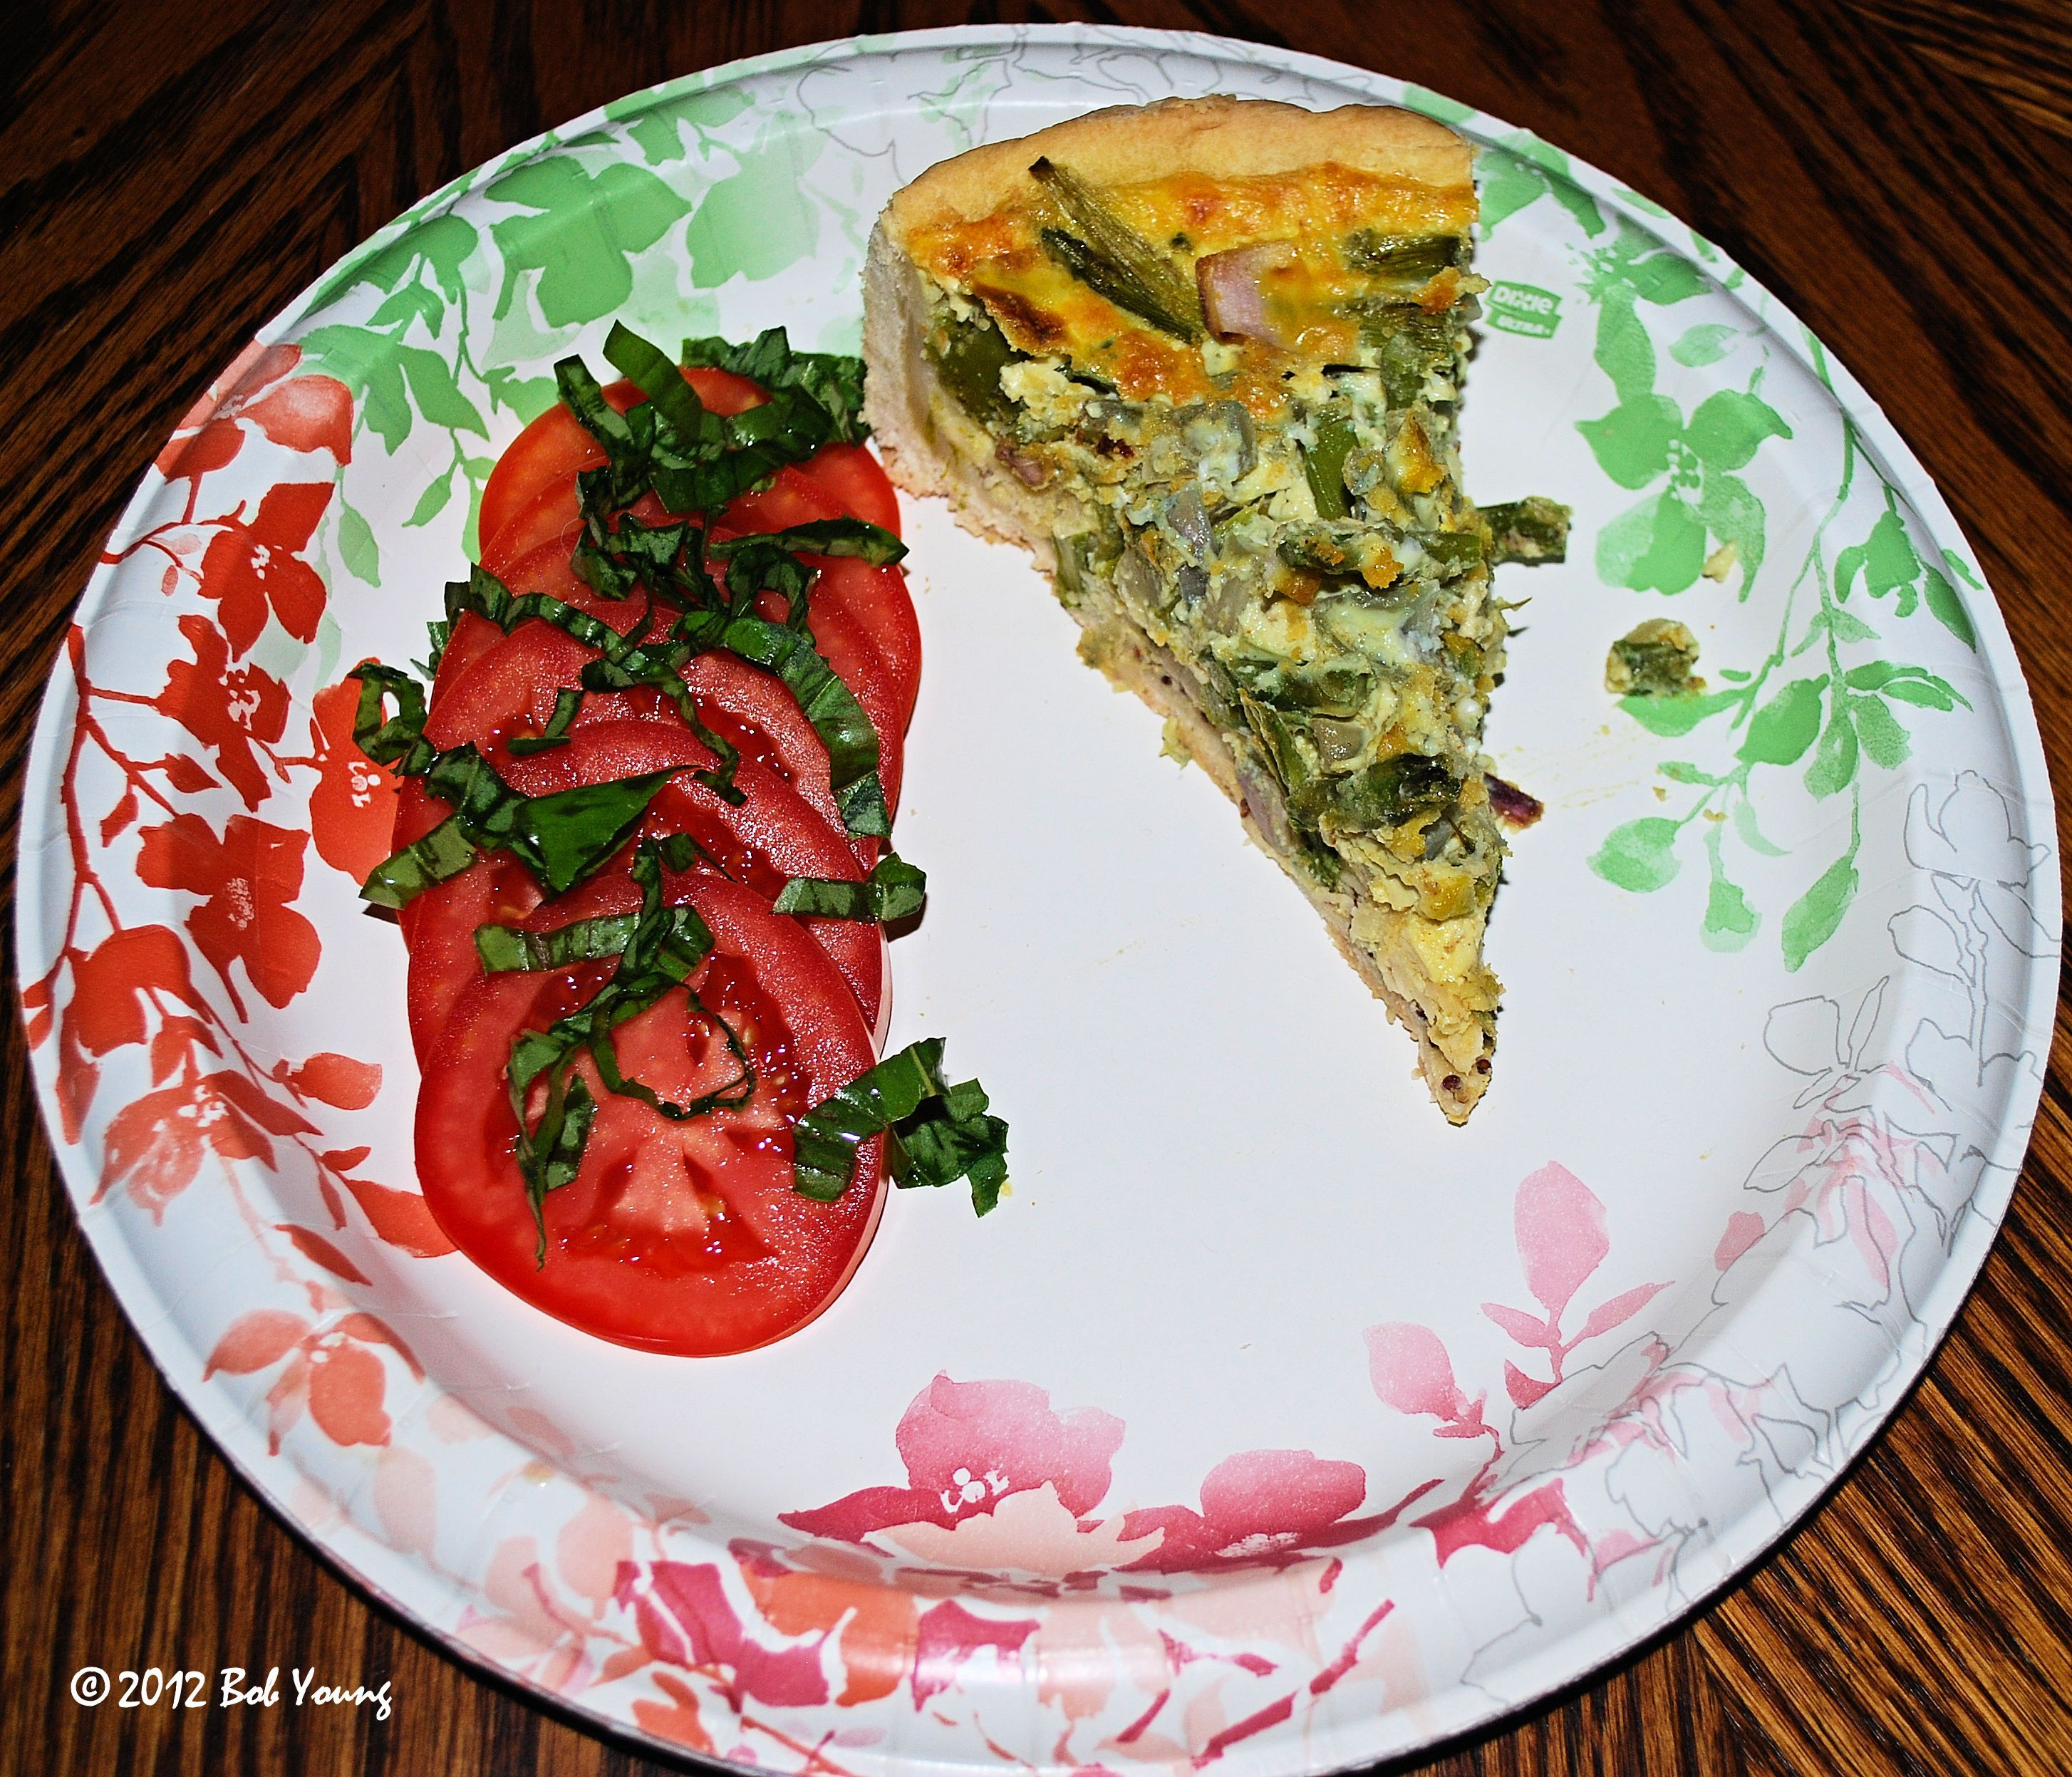 Robin's Asparagus Quiche with Sliced Fresh Tomatoes and Fresh Basil Threads. The Captain's Shack